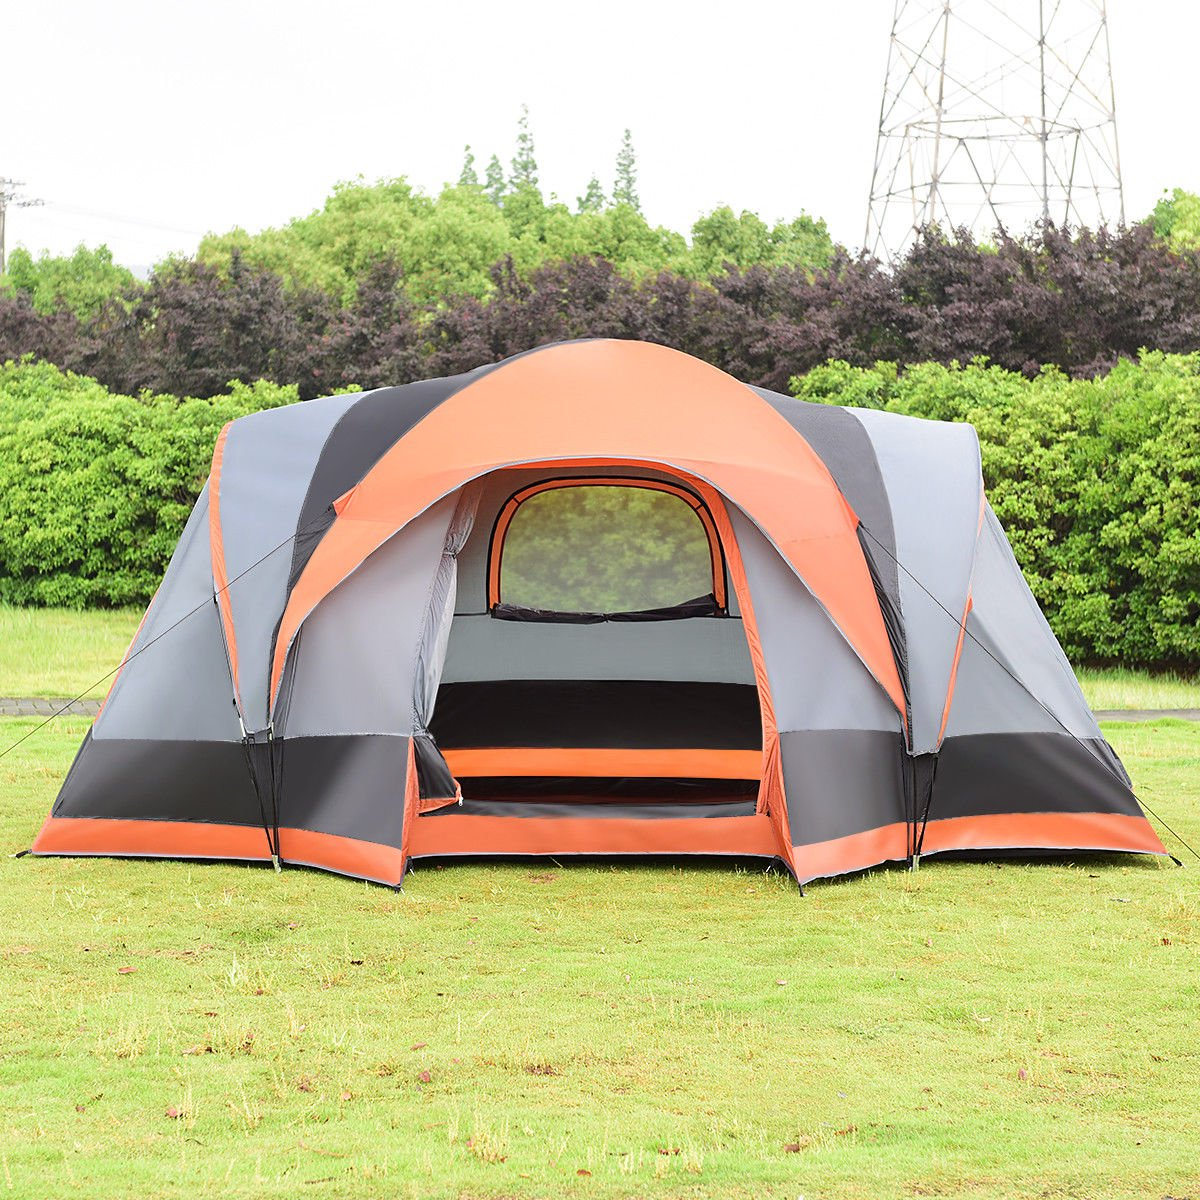 Your essential guide to the family tent large size items!